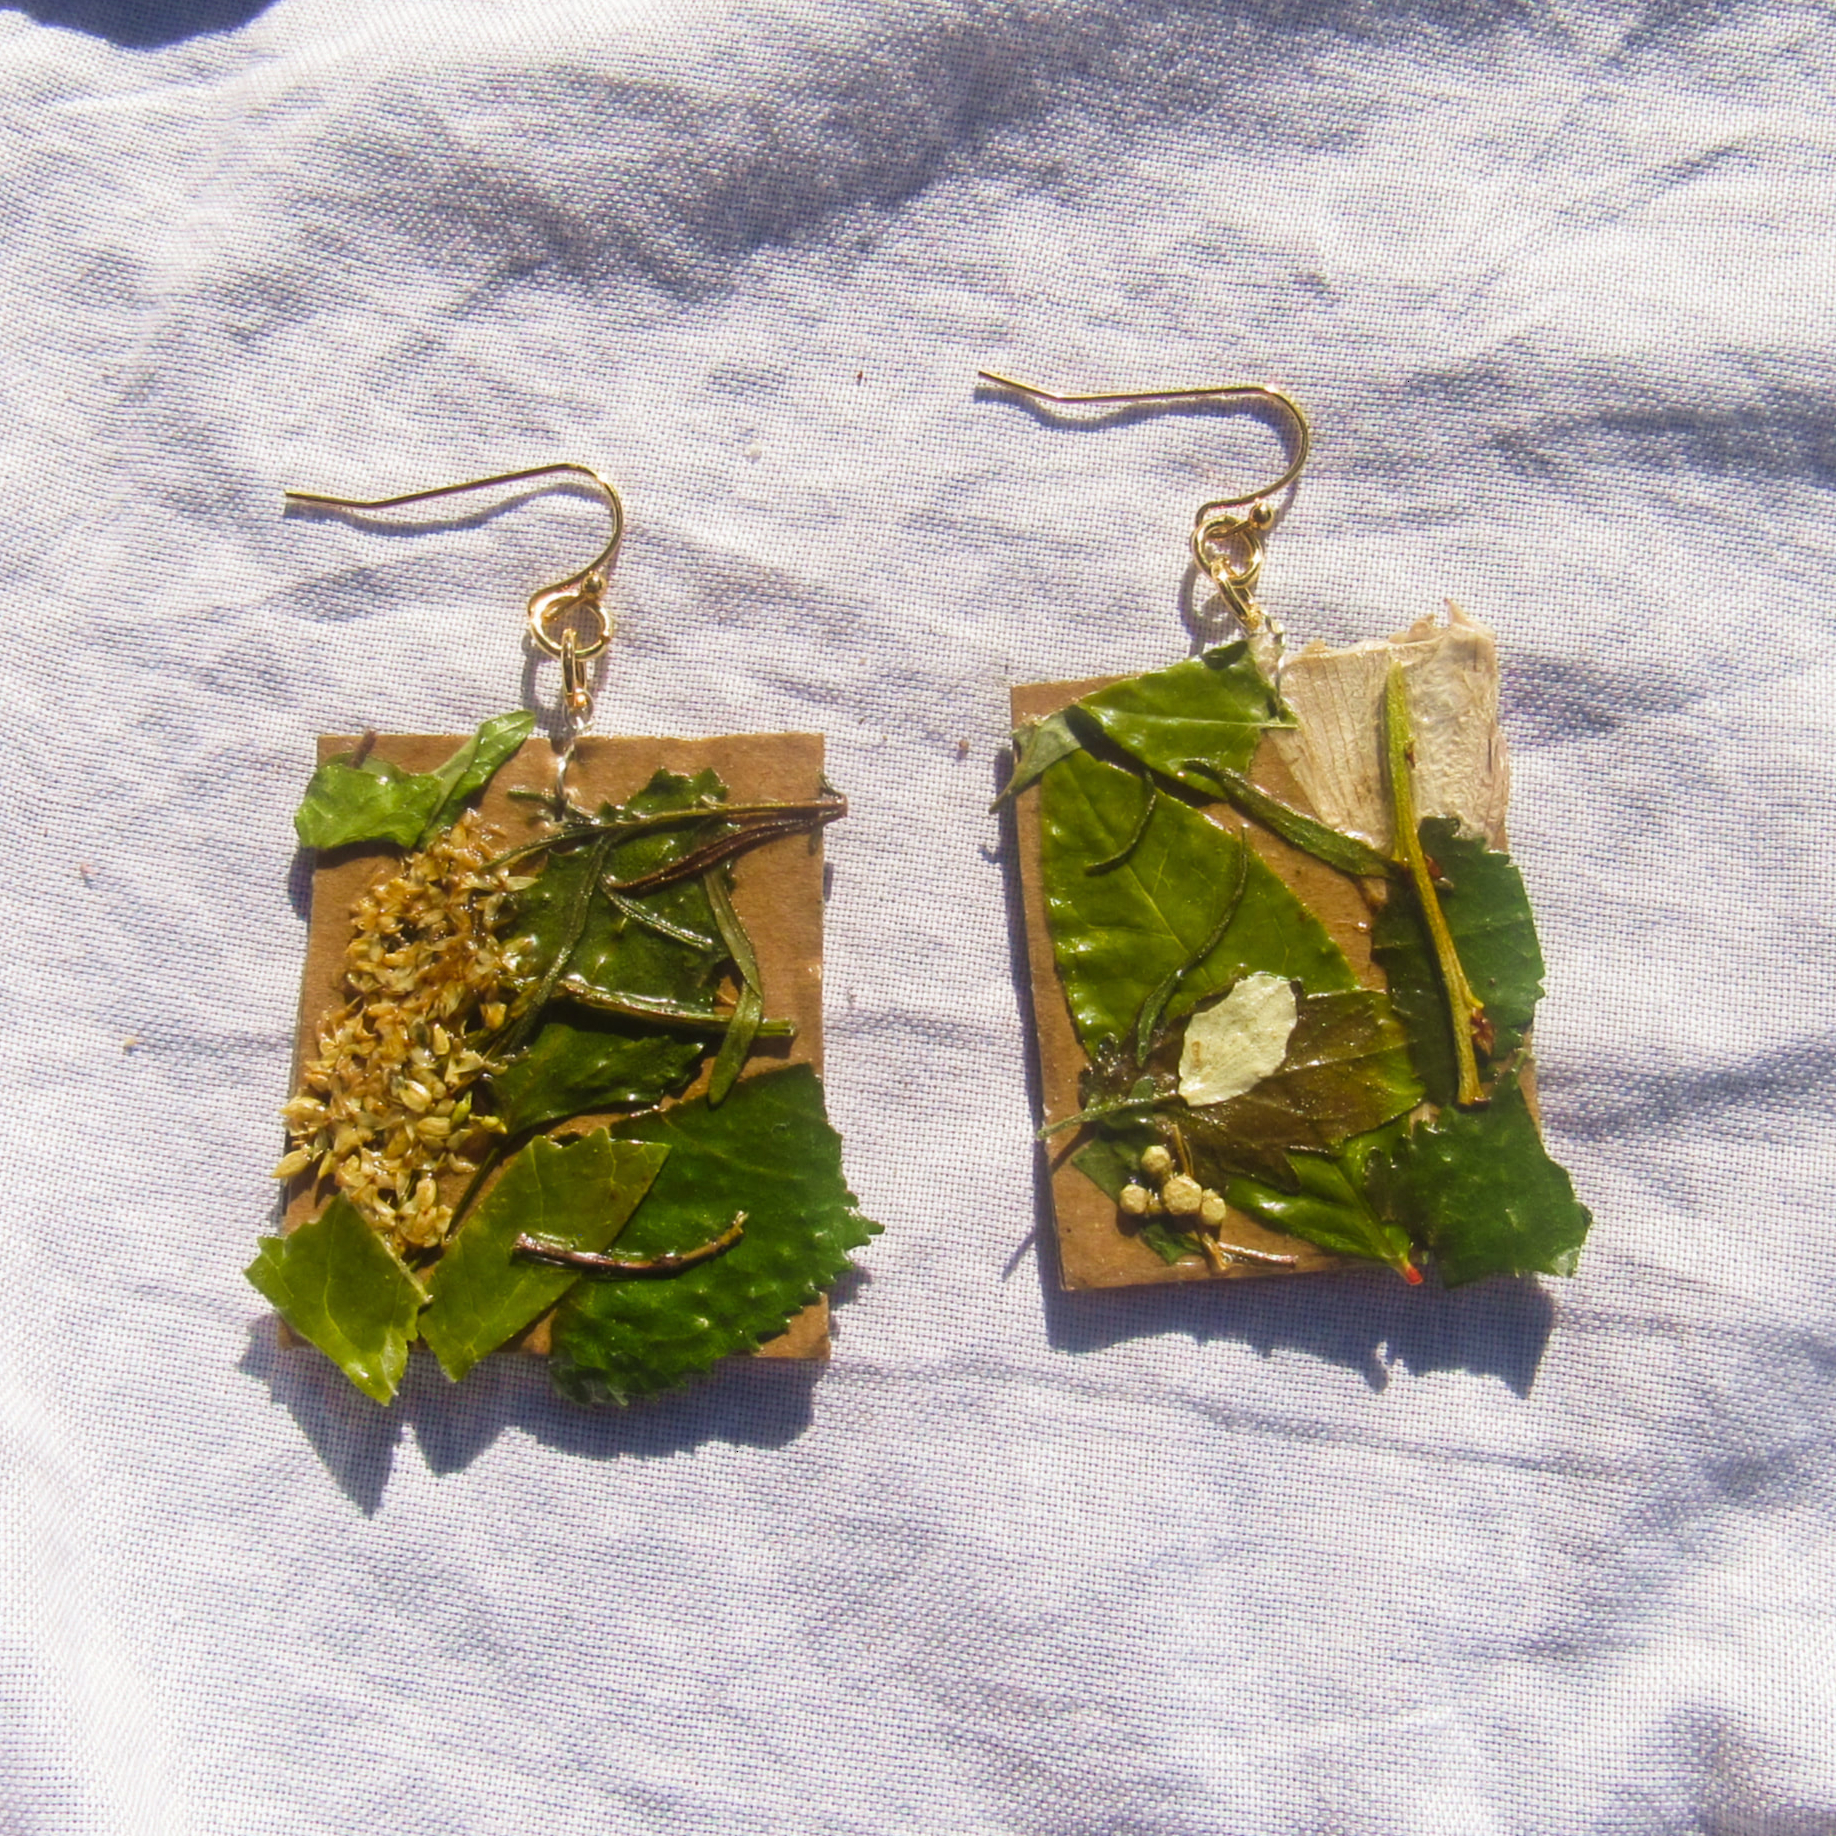 Caption: Upcycled Earrings, Credit: Josie Colton